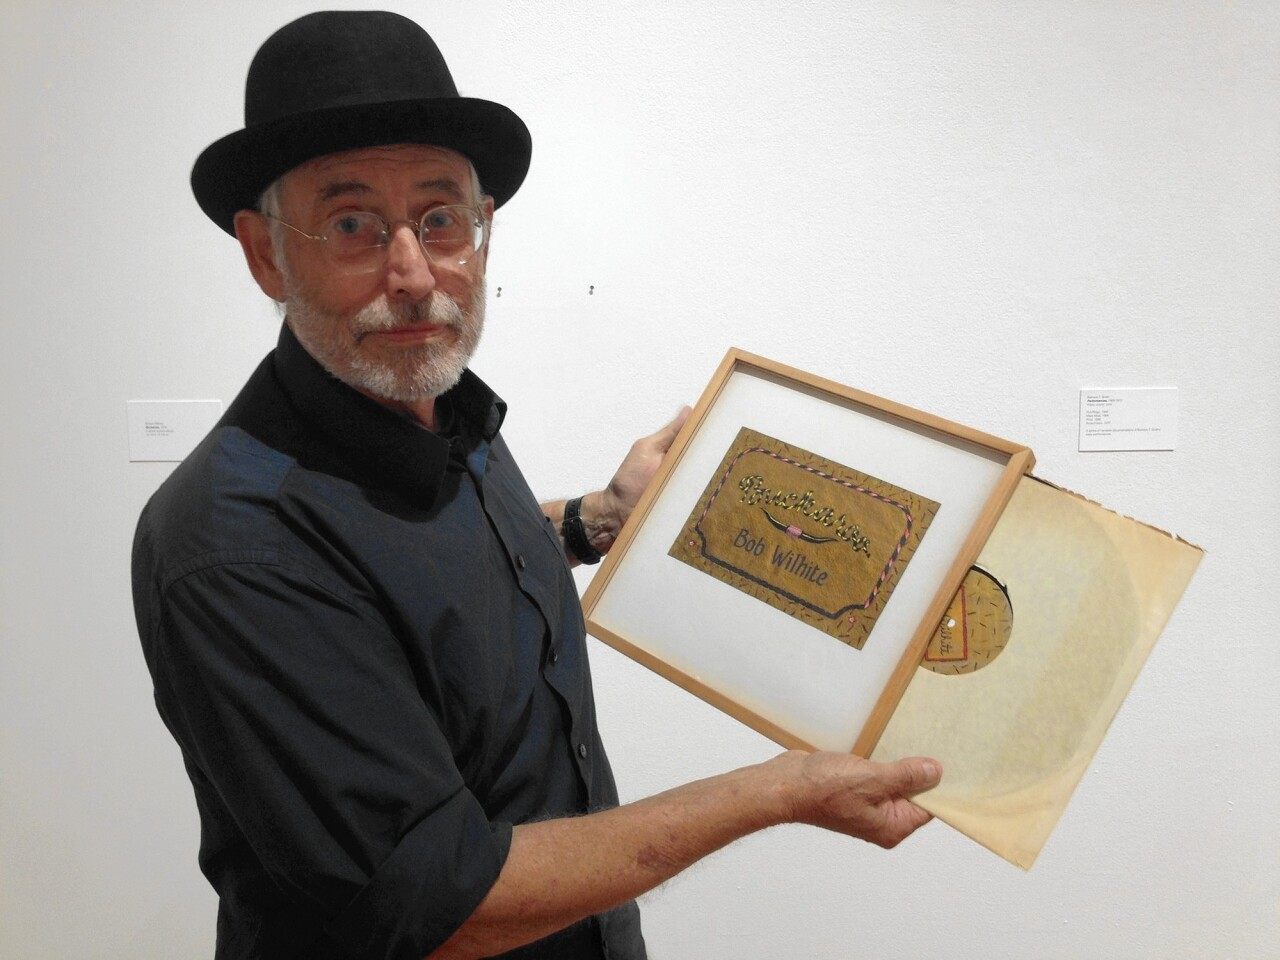 """Artist and UC Irvine graduate Robert Wilhite demonstrates how his 1976 artwork, """"Buckaroo,"""" is actually a handmade record case with a real vinyl record inside. His work is on view in the University Art Gallery through Dec. 12."""